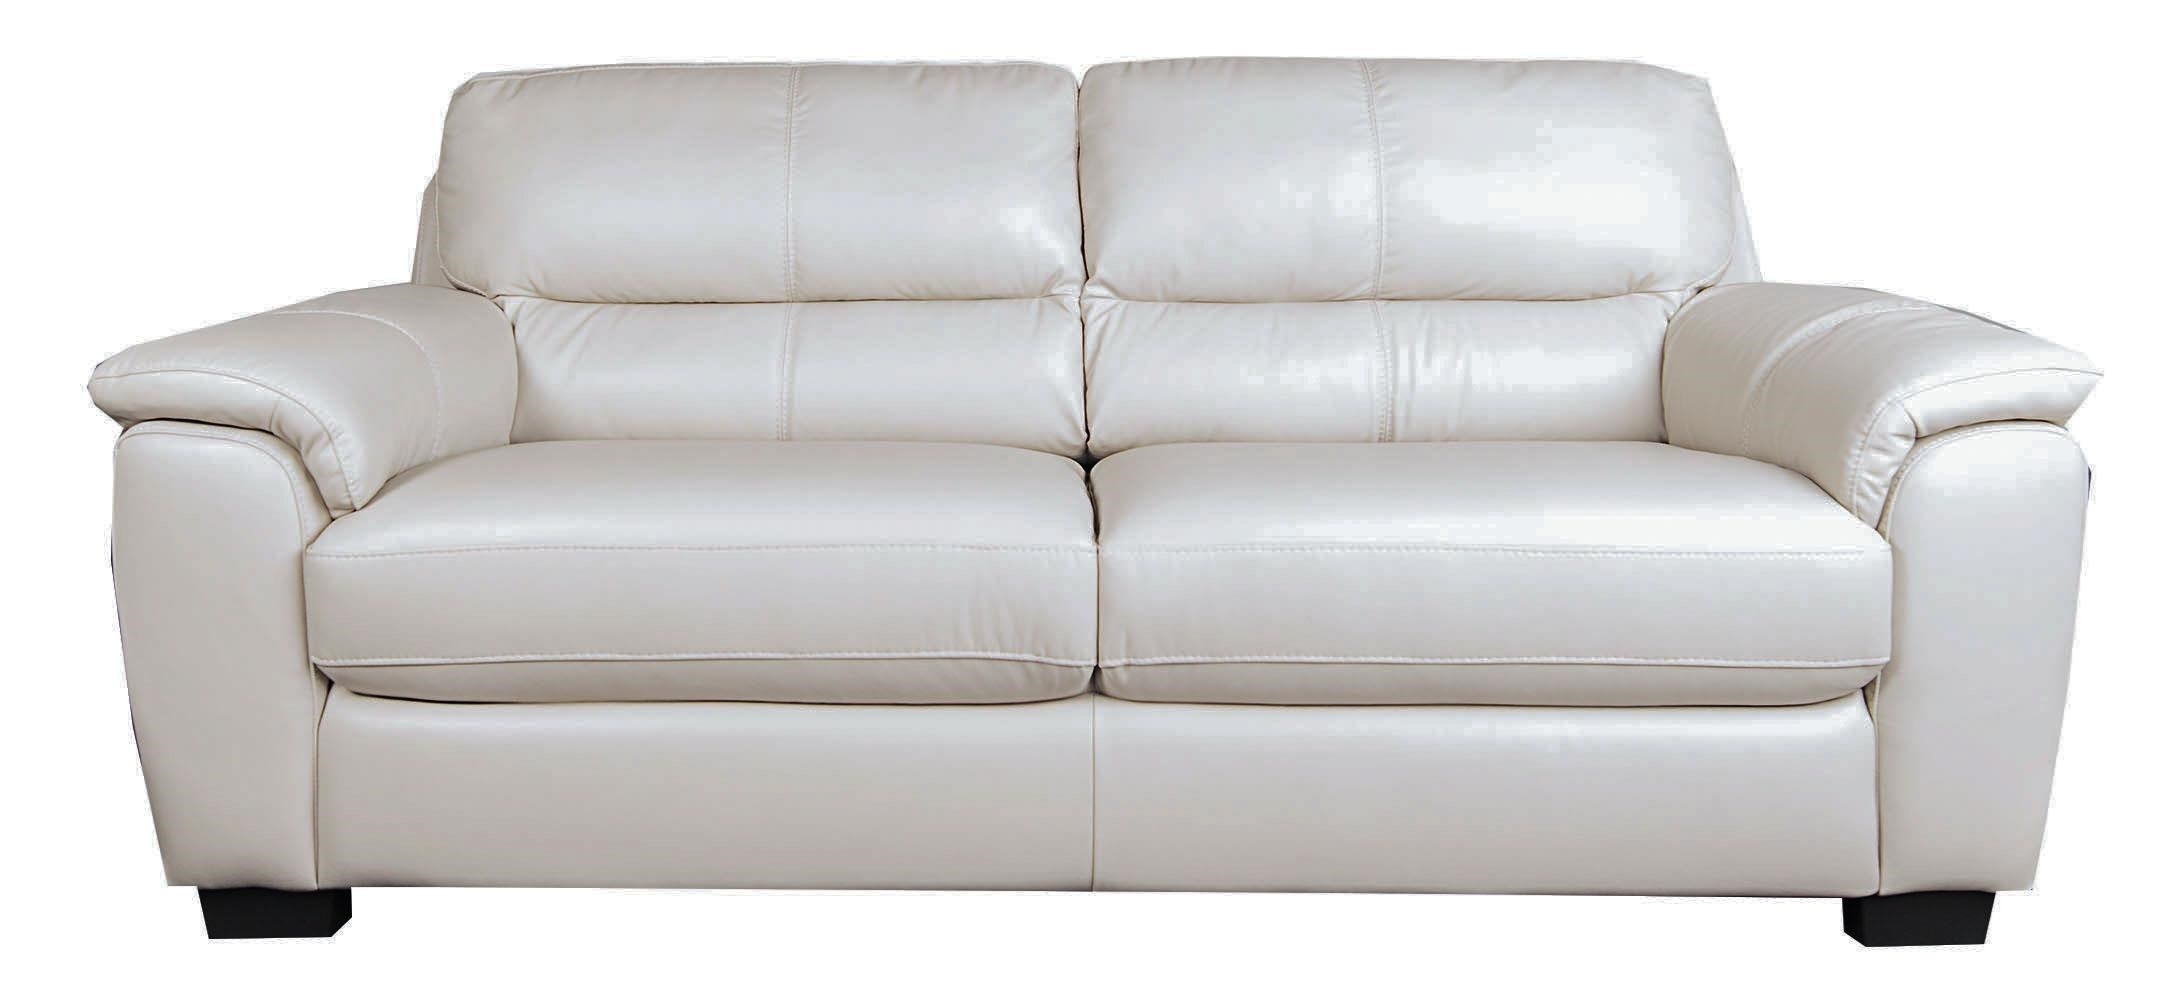 White Leather Couch Holt Contemporary 100 Leather Sofa By San Lorenzo At Morris Home